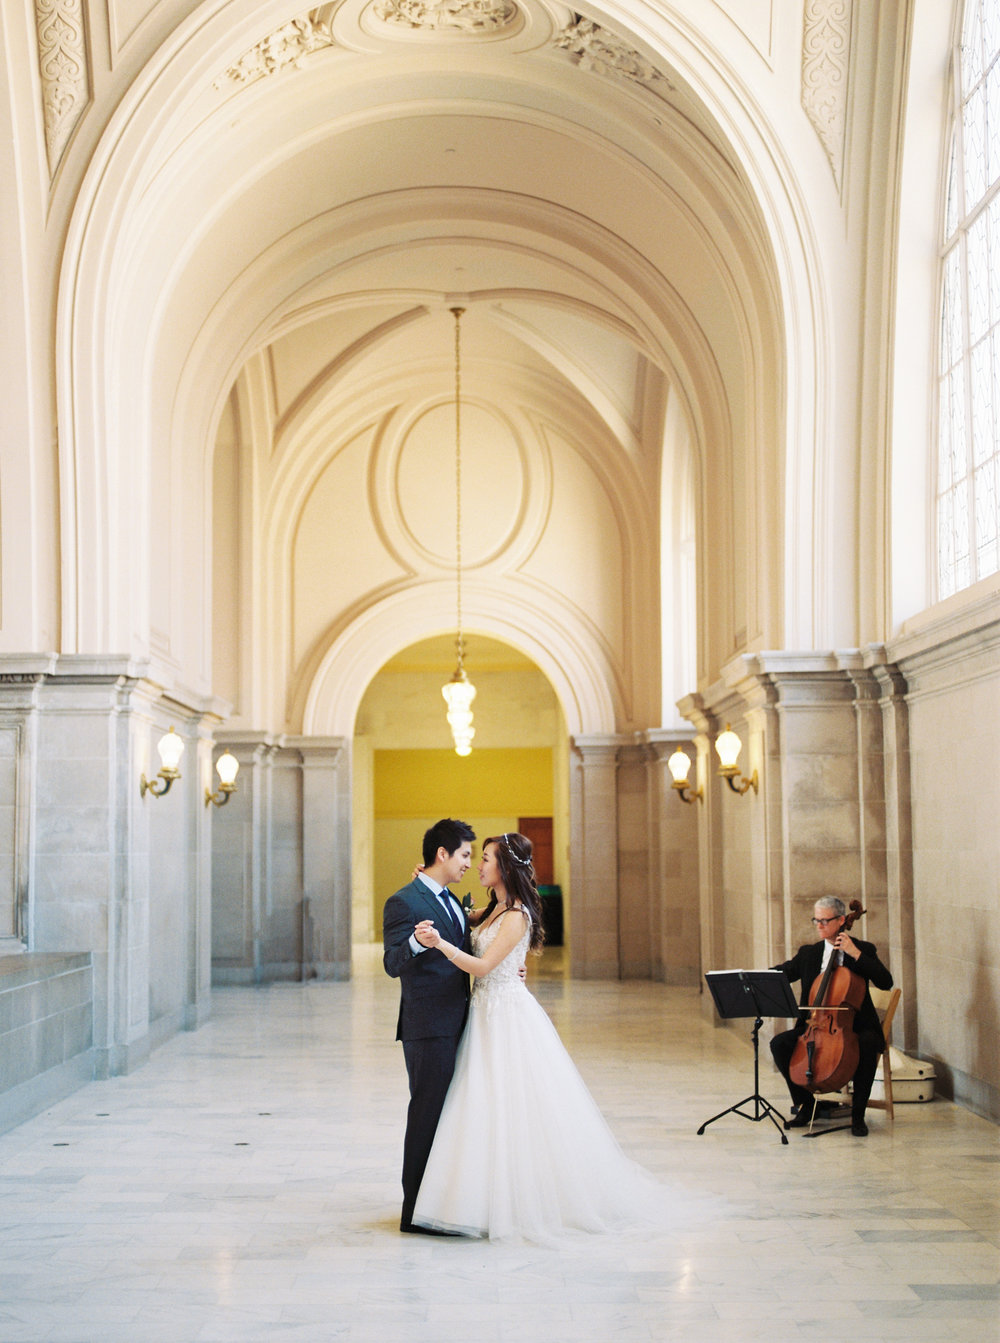 dennisroycoronel_san-francisco-city-hall_wedding-14.jpg